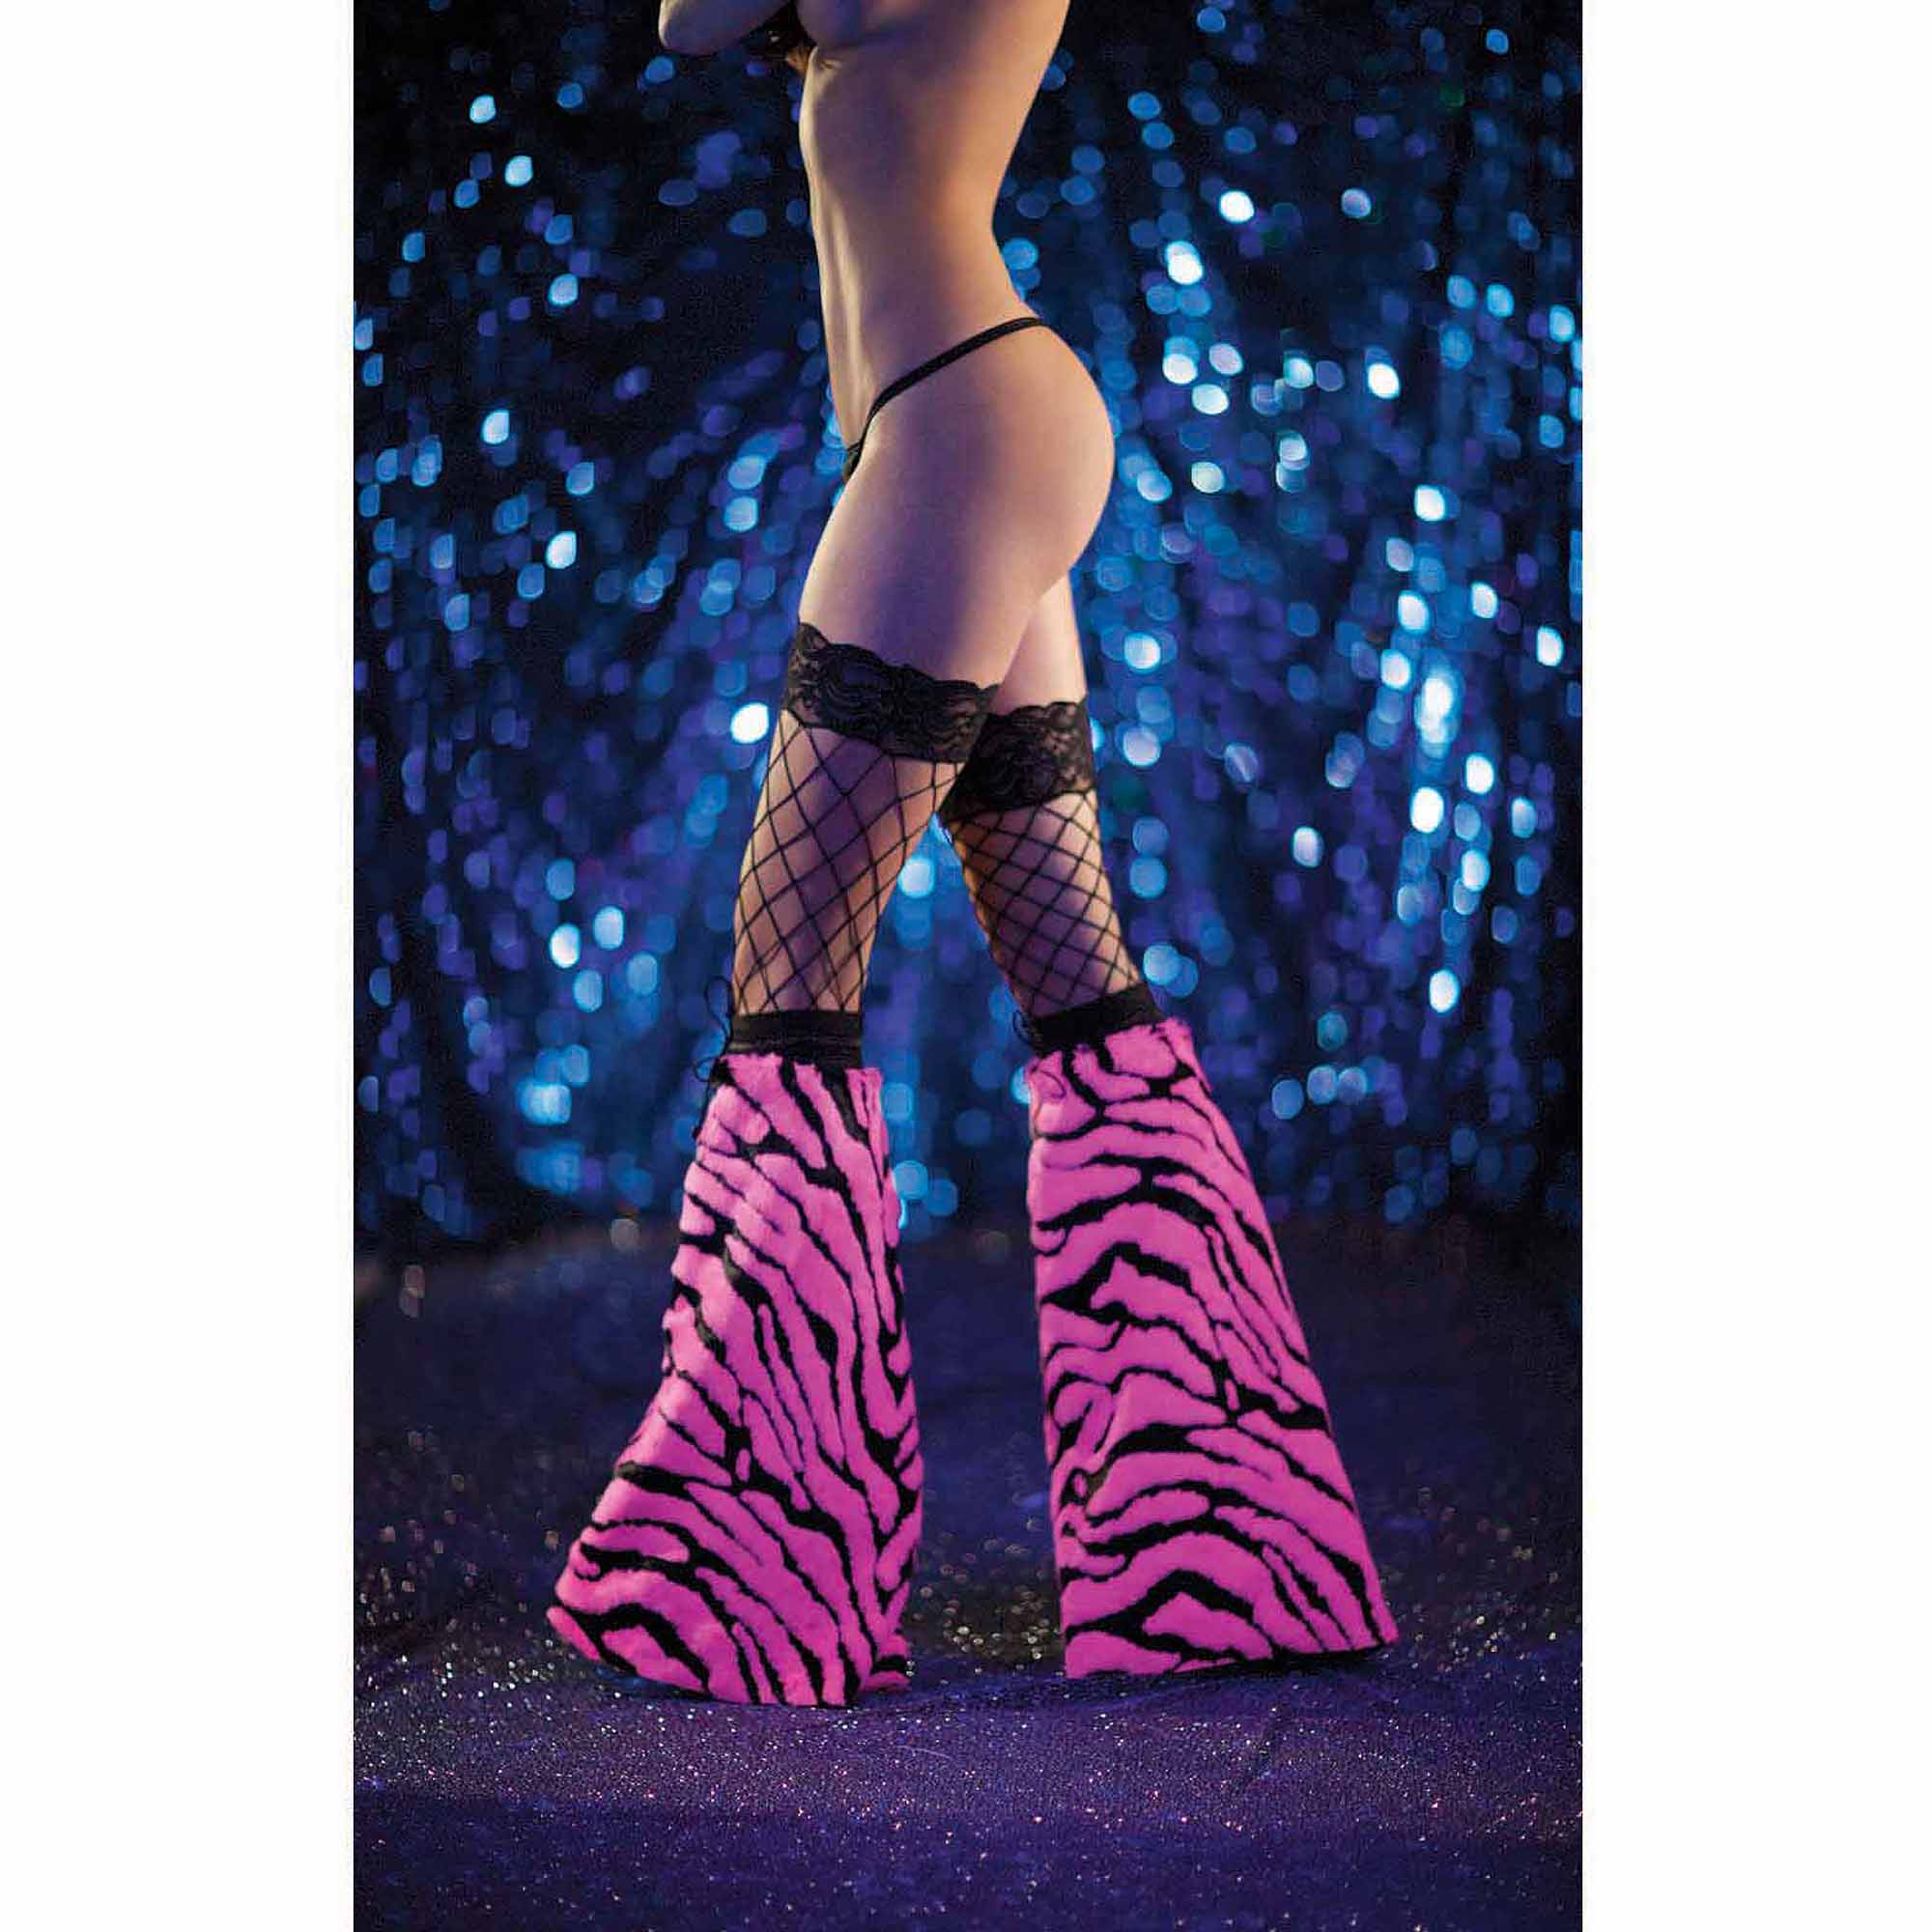 Pink and Black Fuzzy Glow-In-The-Dark Boot Covers with Elastic Drawstring Halloween Accessory